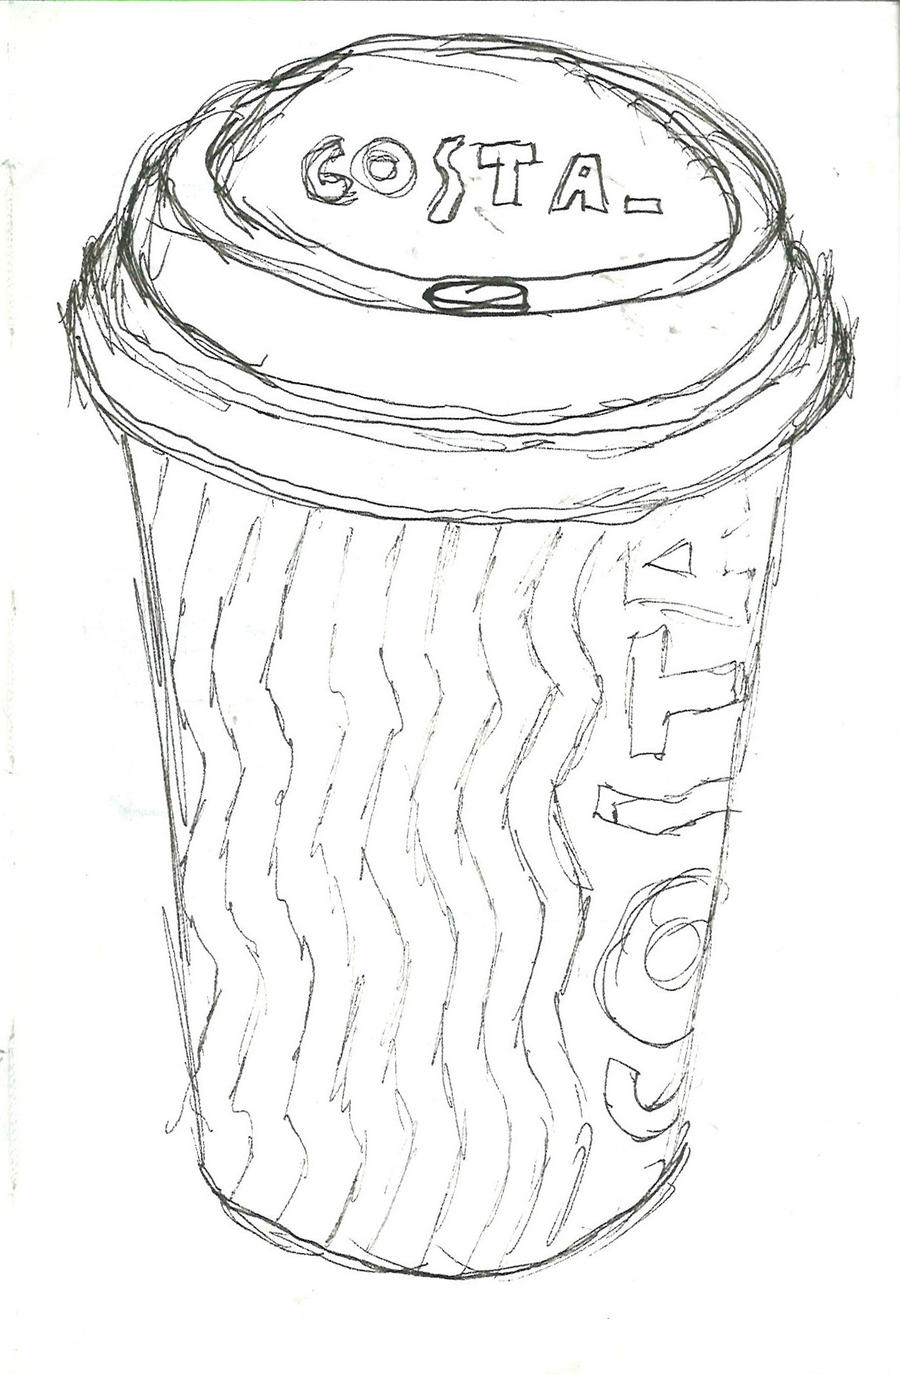 Coffee cup sketch - Costa Coffee Cup By Drakesillustration Costa Coffee Cup By Drakesillustration